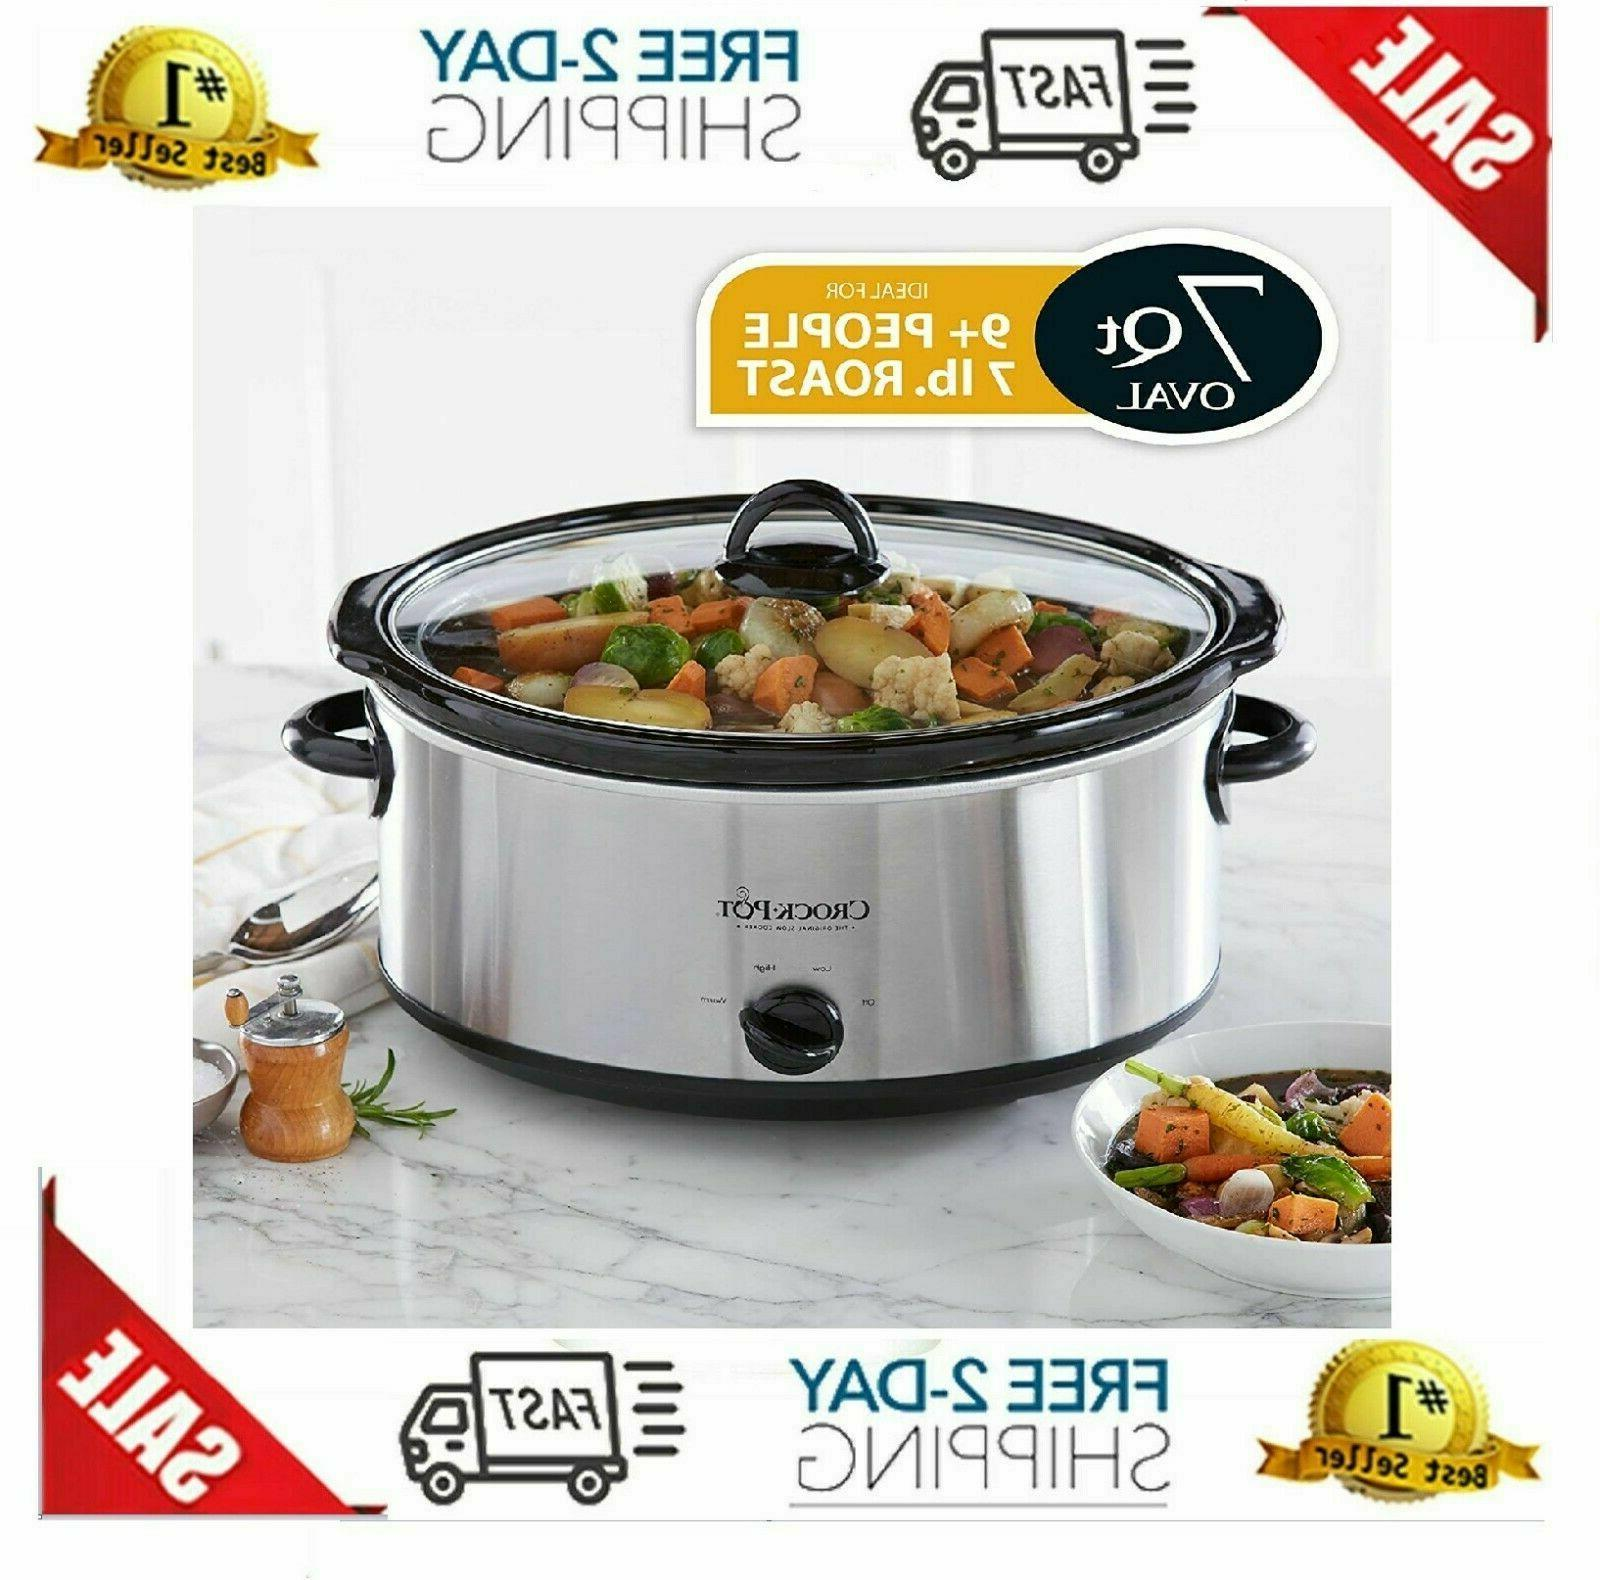 Crock-Pot Oval Slow Cooker | Stainless Steel